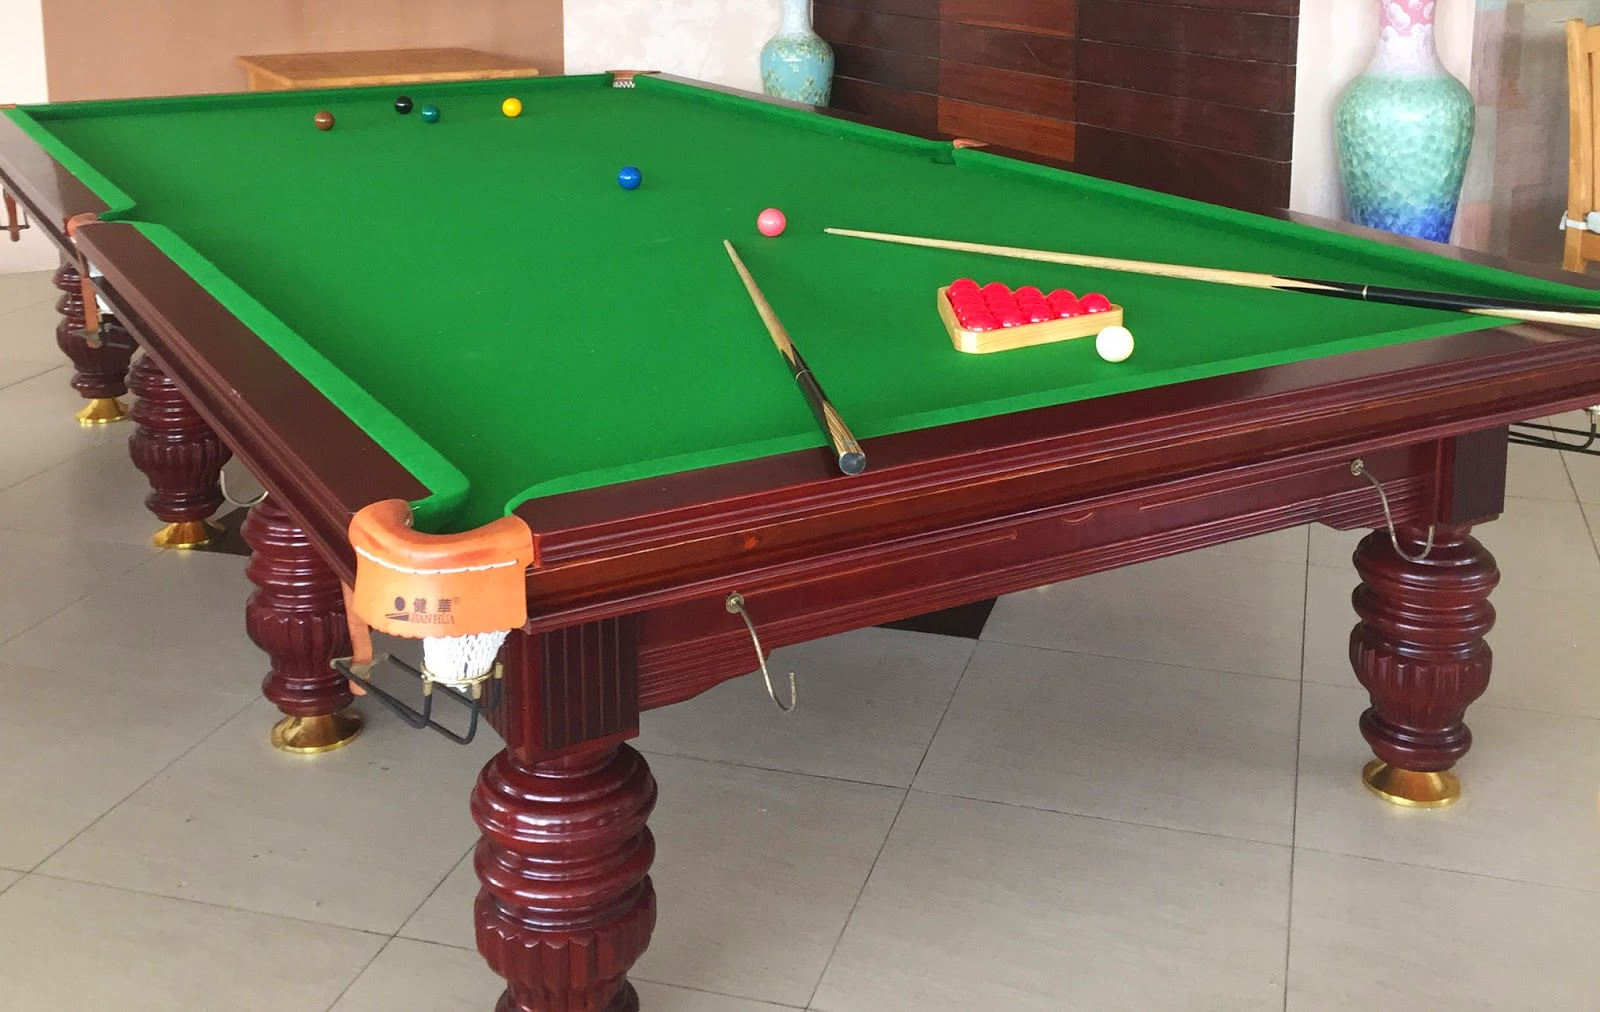 Masons Travel Hotel Updates Cerf Isand Resort - Travel pool table